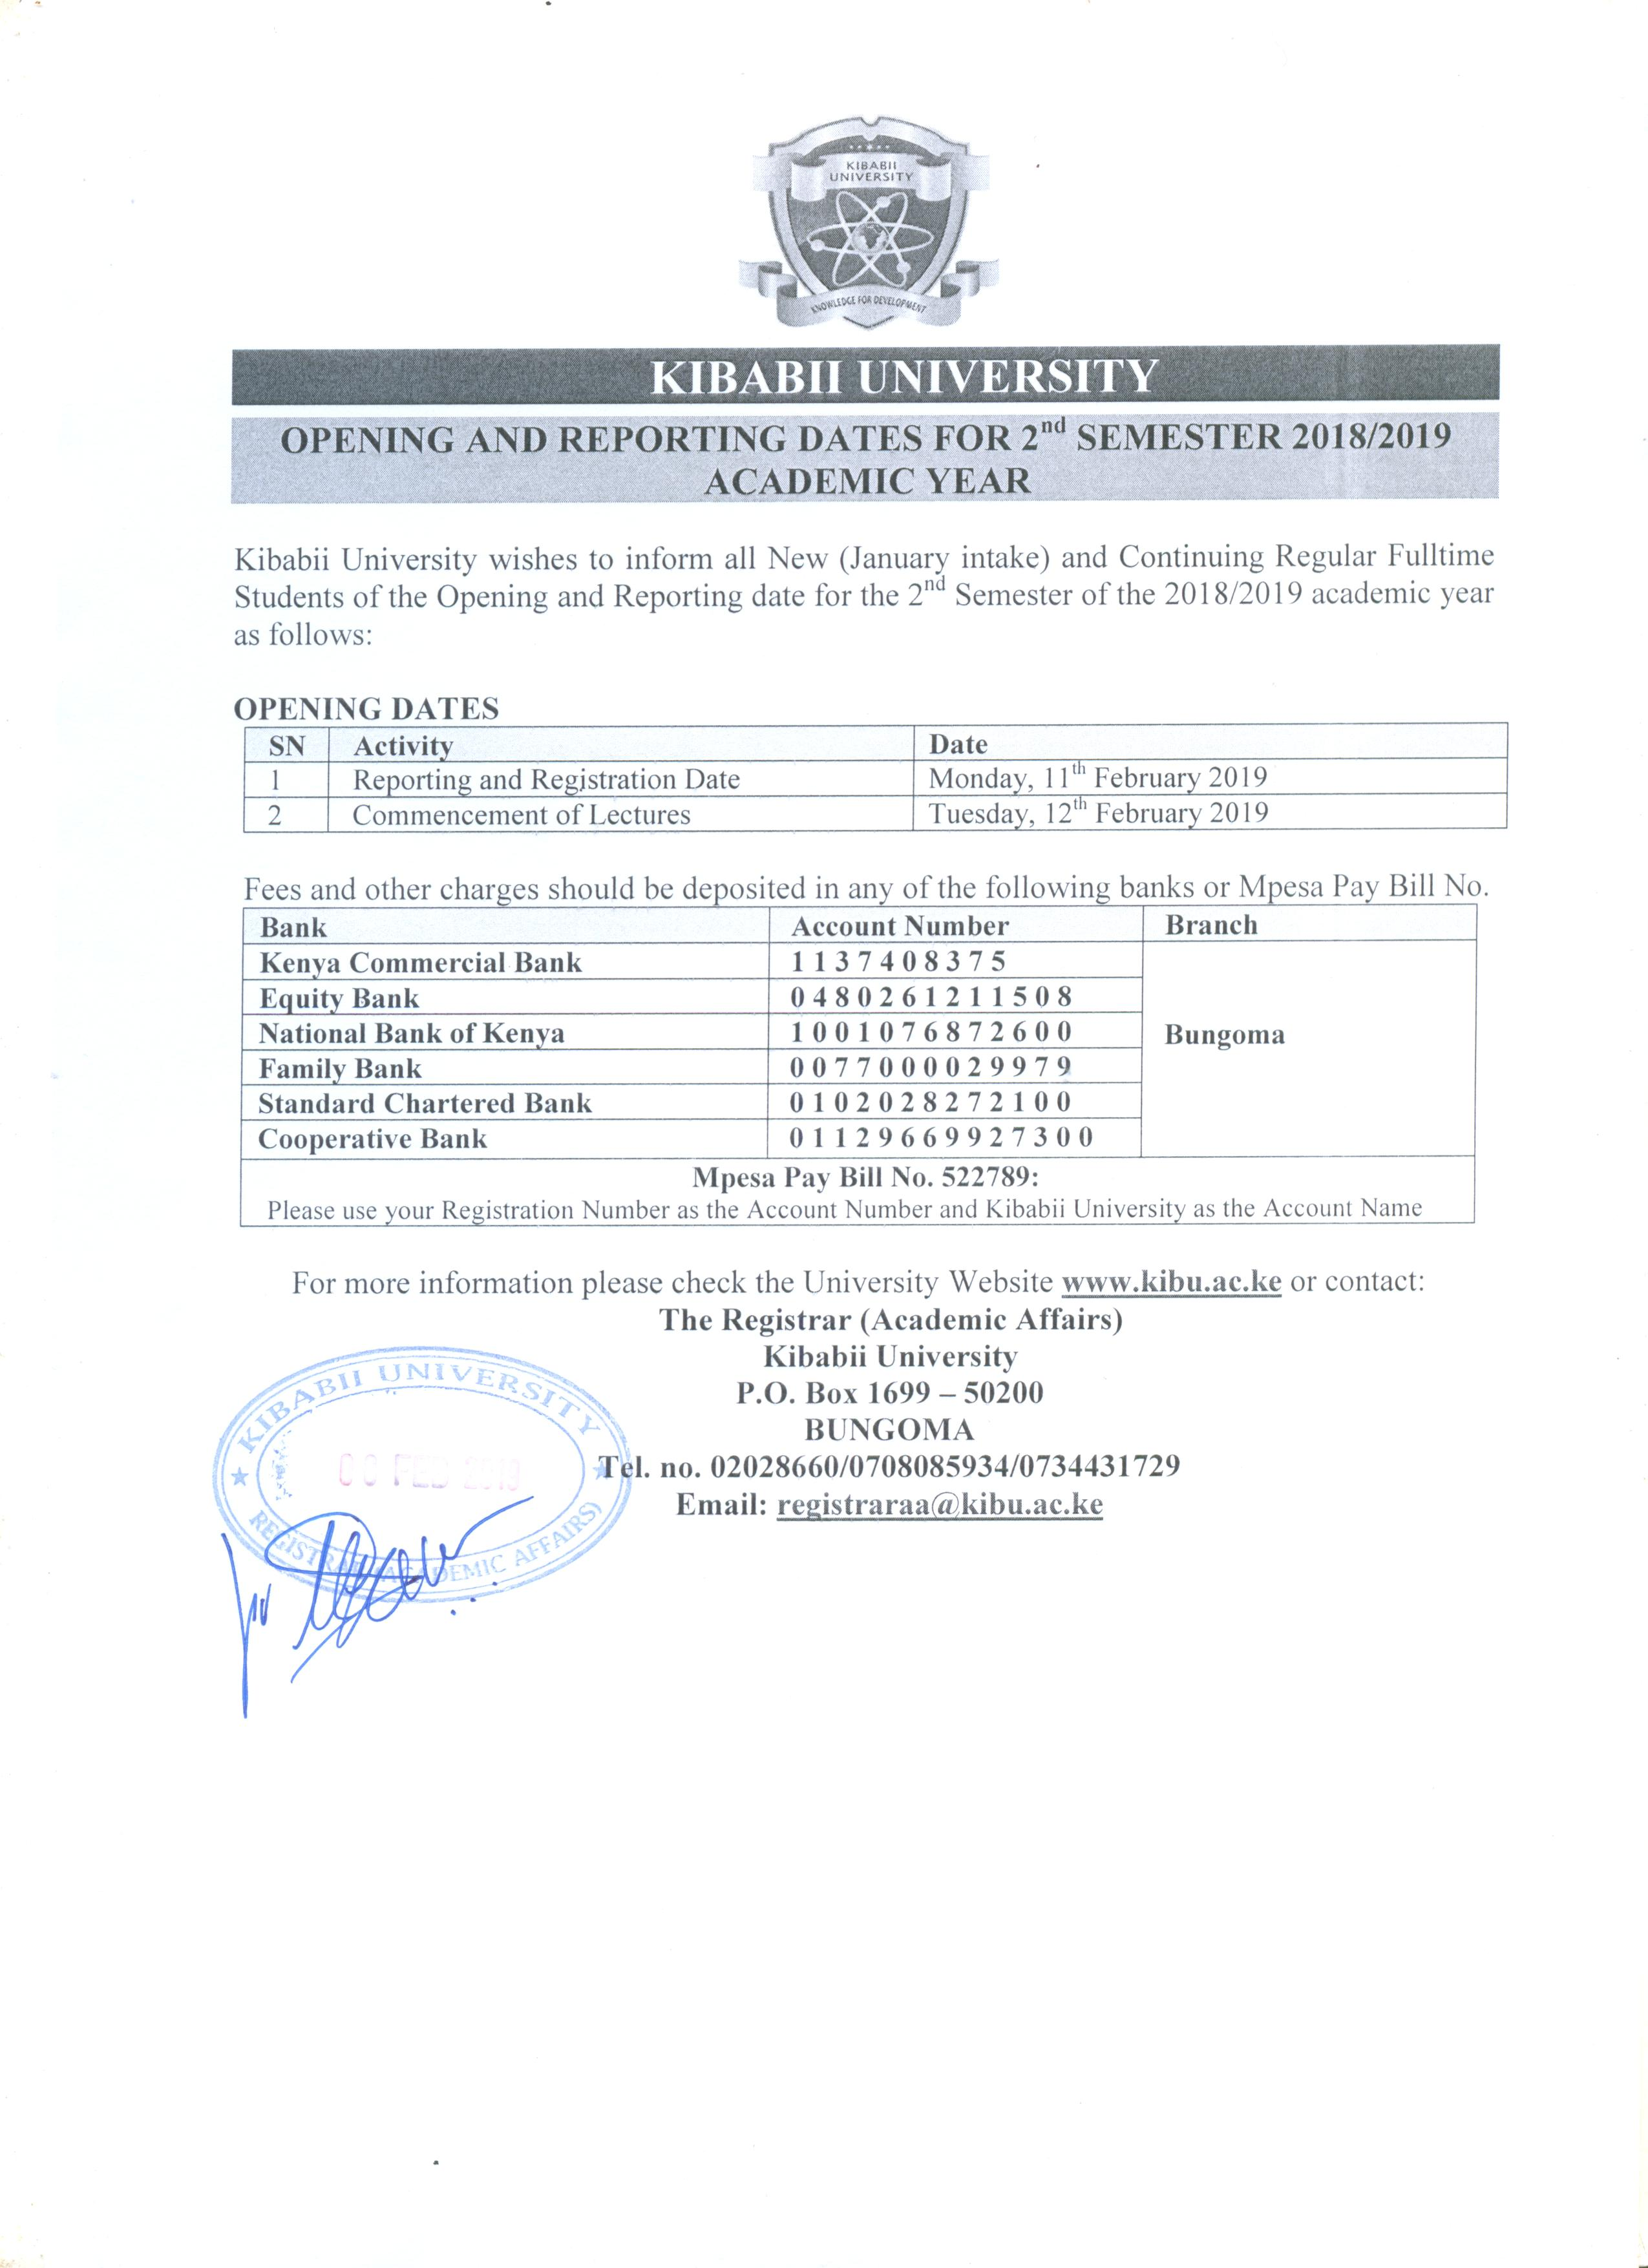 Opening and Reporting Dates for 2nd Semester 2018/2019 Academic Year